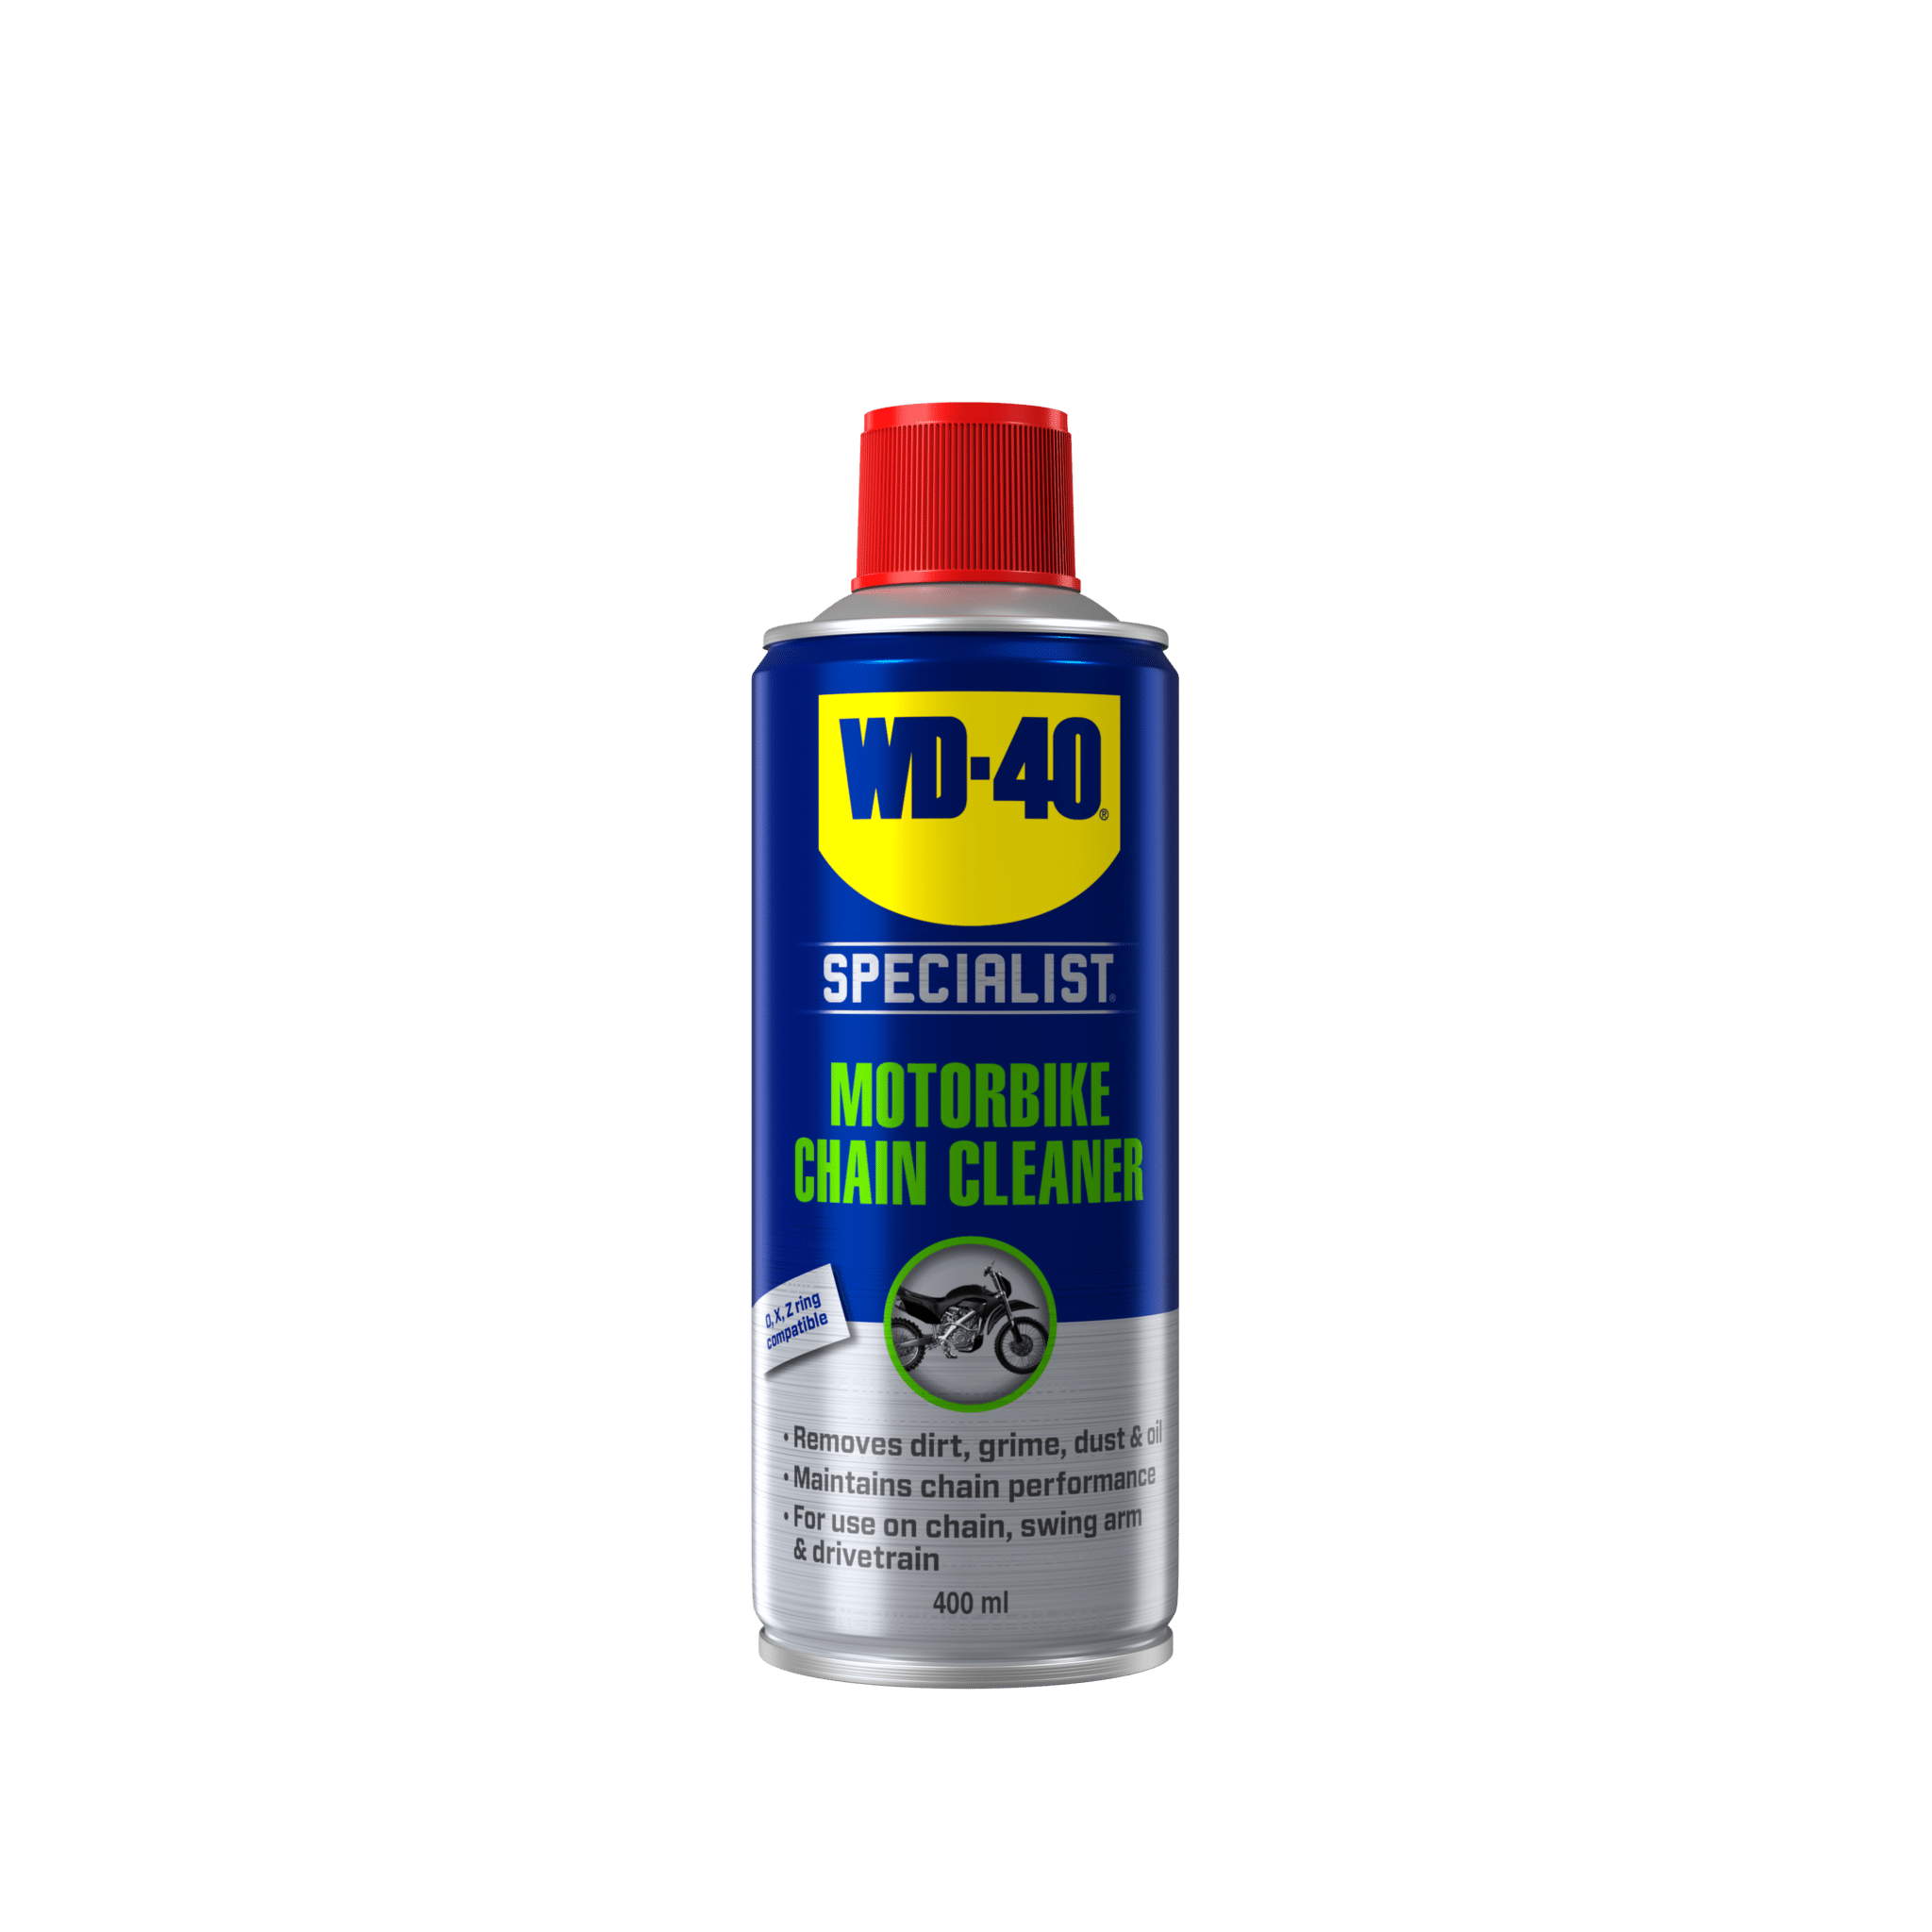 wd 40 specialist motorbike chain cleaner front